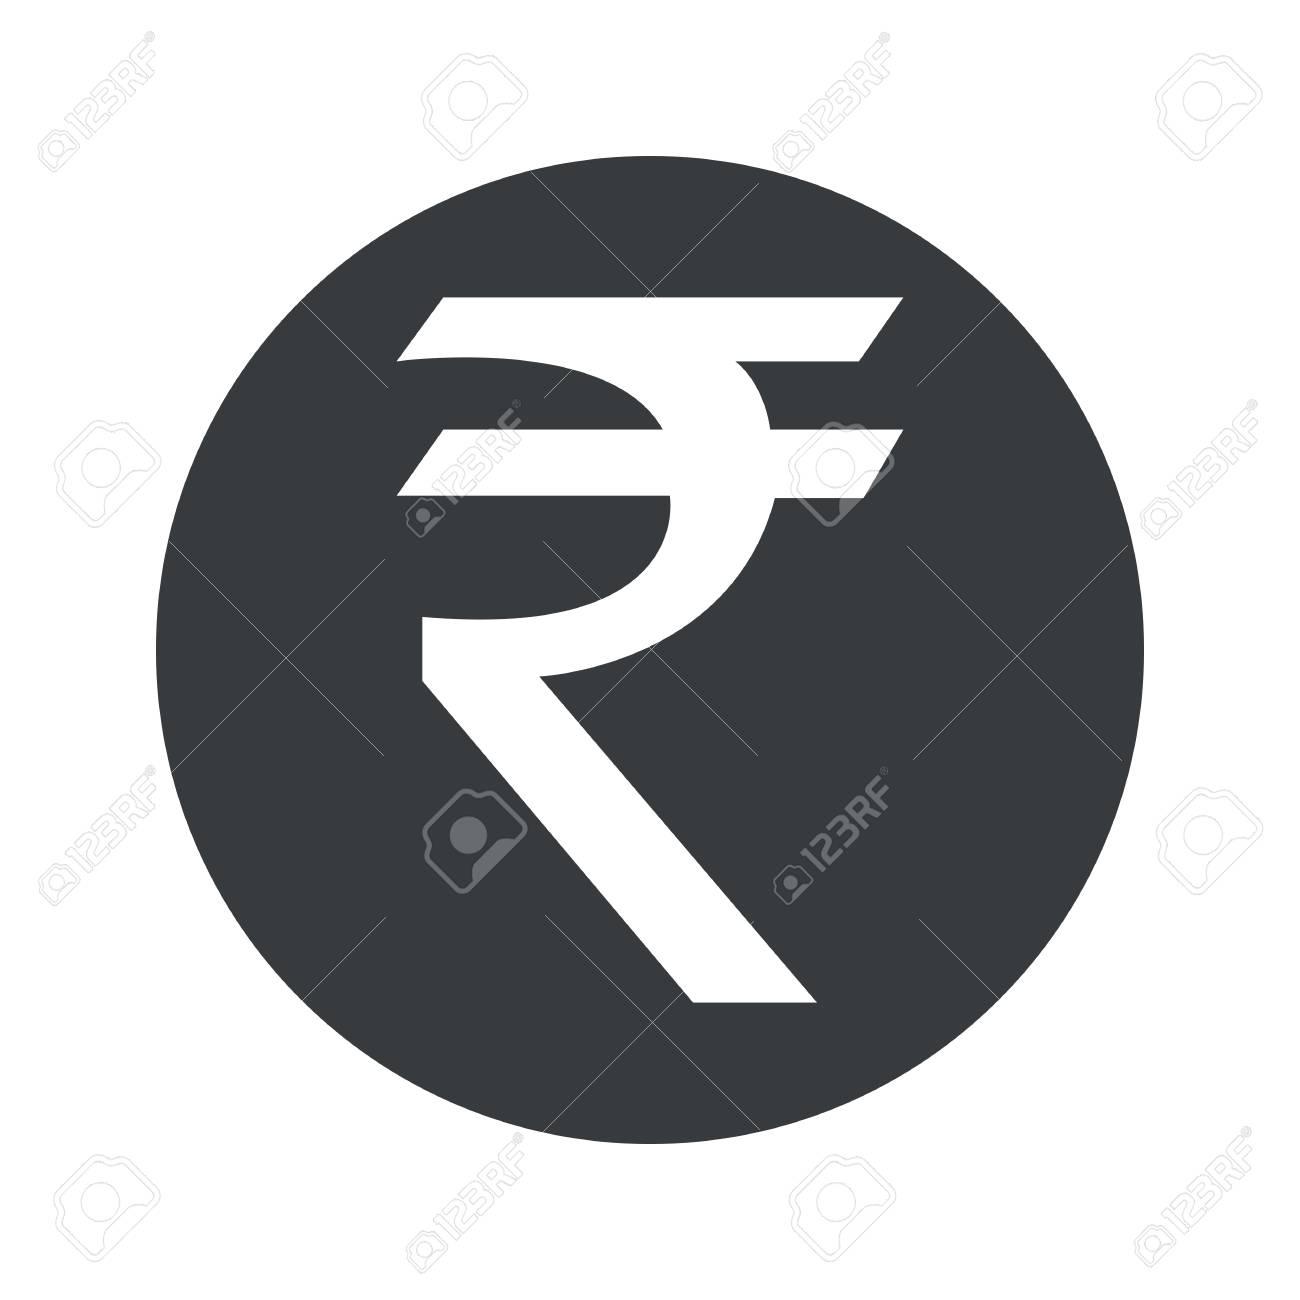 Indian Rupee Symbol In Black Circle Isolated On White Royalty Free